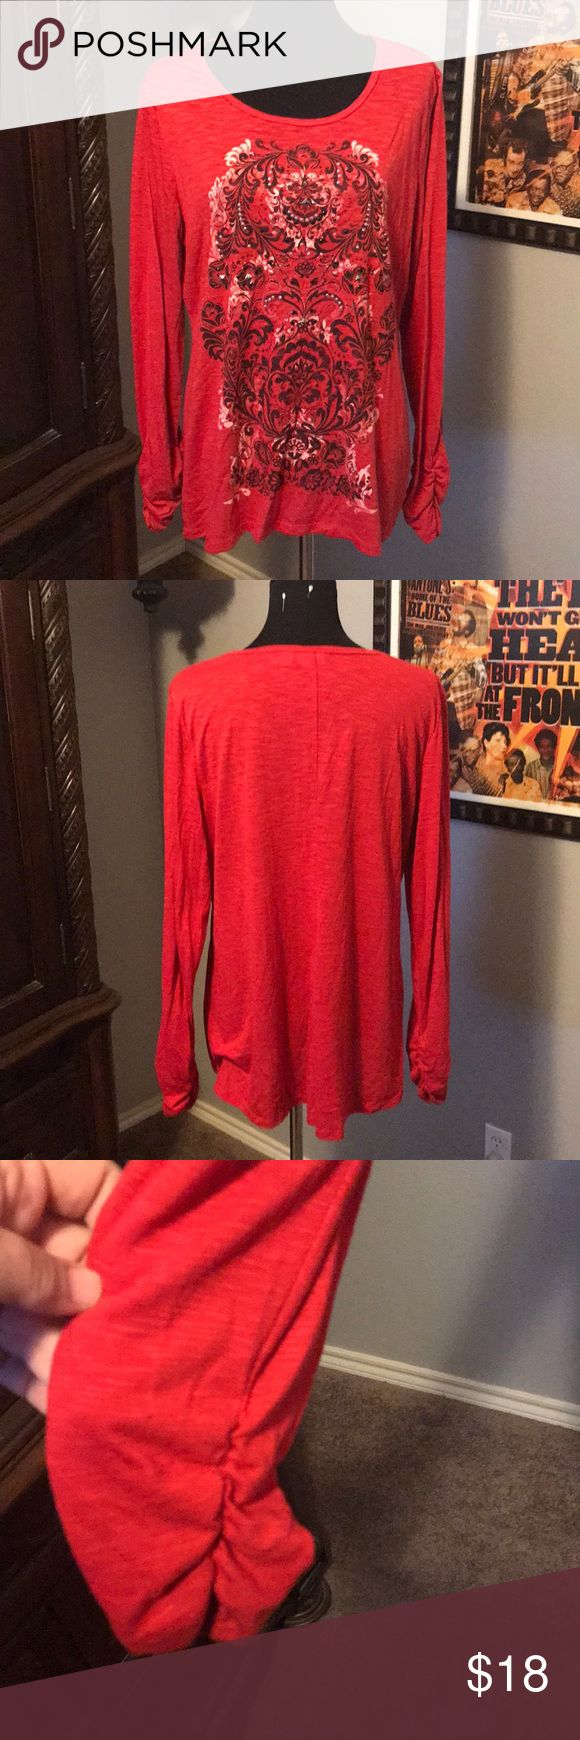 Red top Red long sleeve top with design and silver/black embellishments.  Drawn sleeves at the wrist.  Like new condition. Size is 18/20W Cato Tops Tees - Long Sleeve